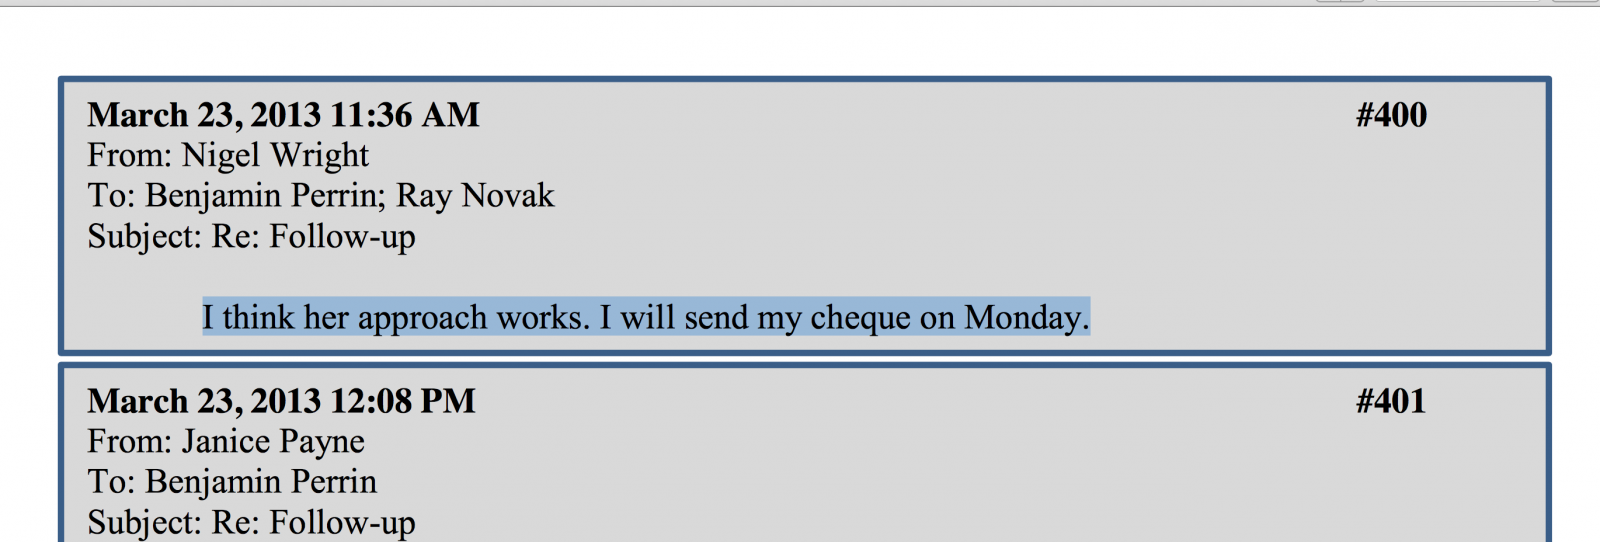 Wright email to Ray Novak about cheque